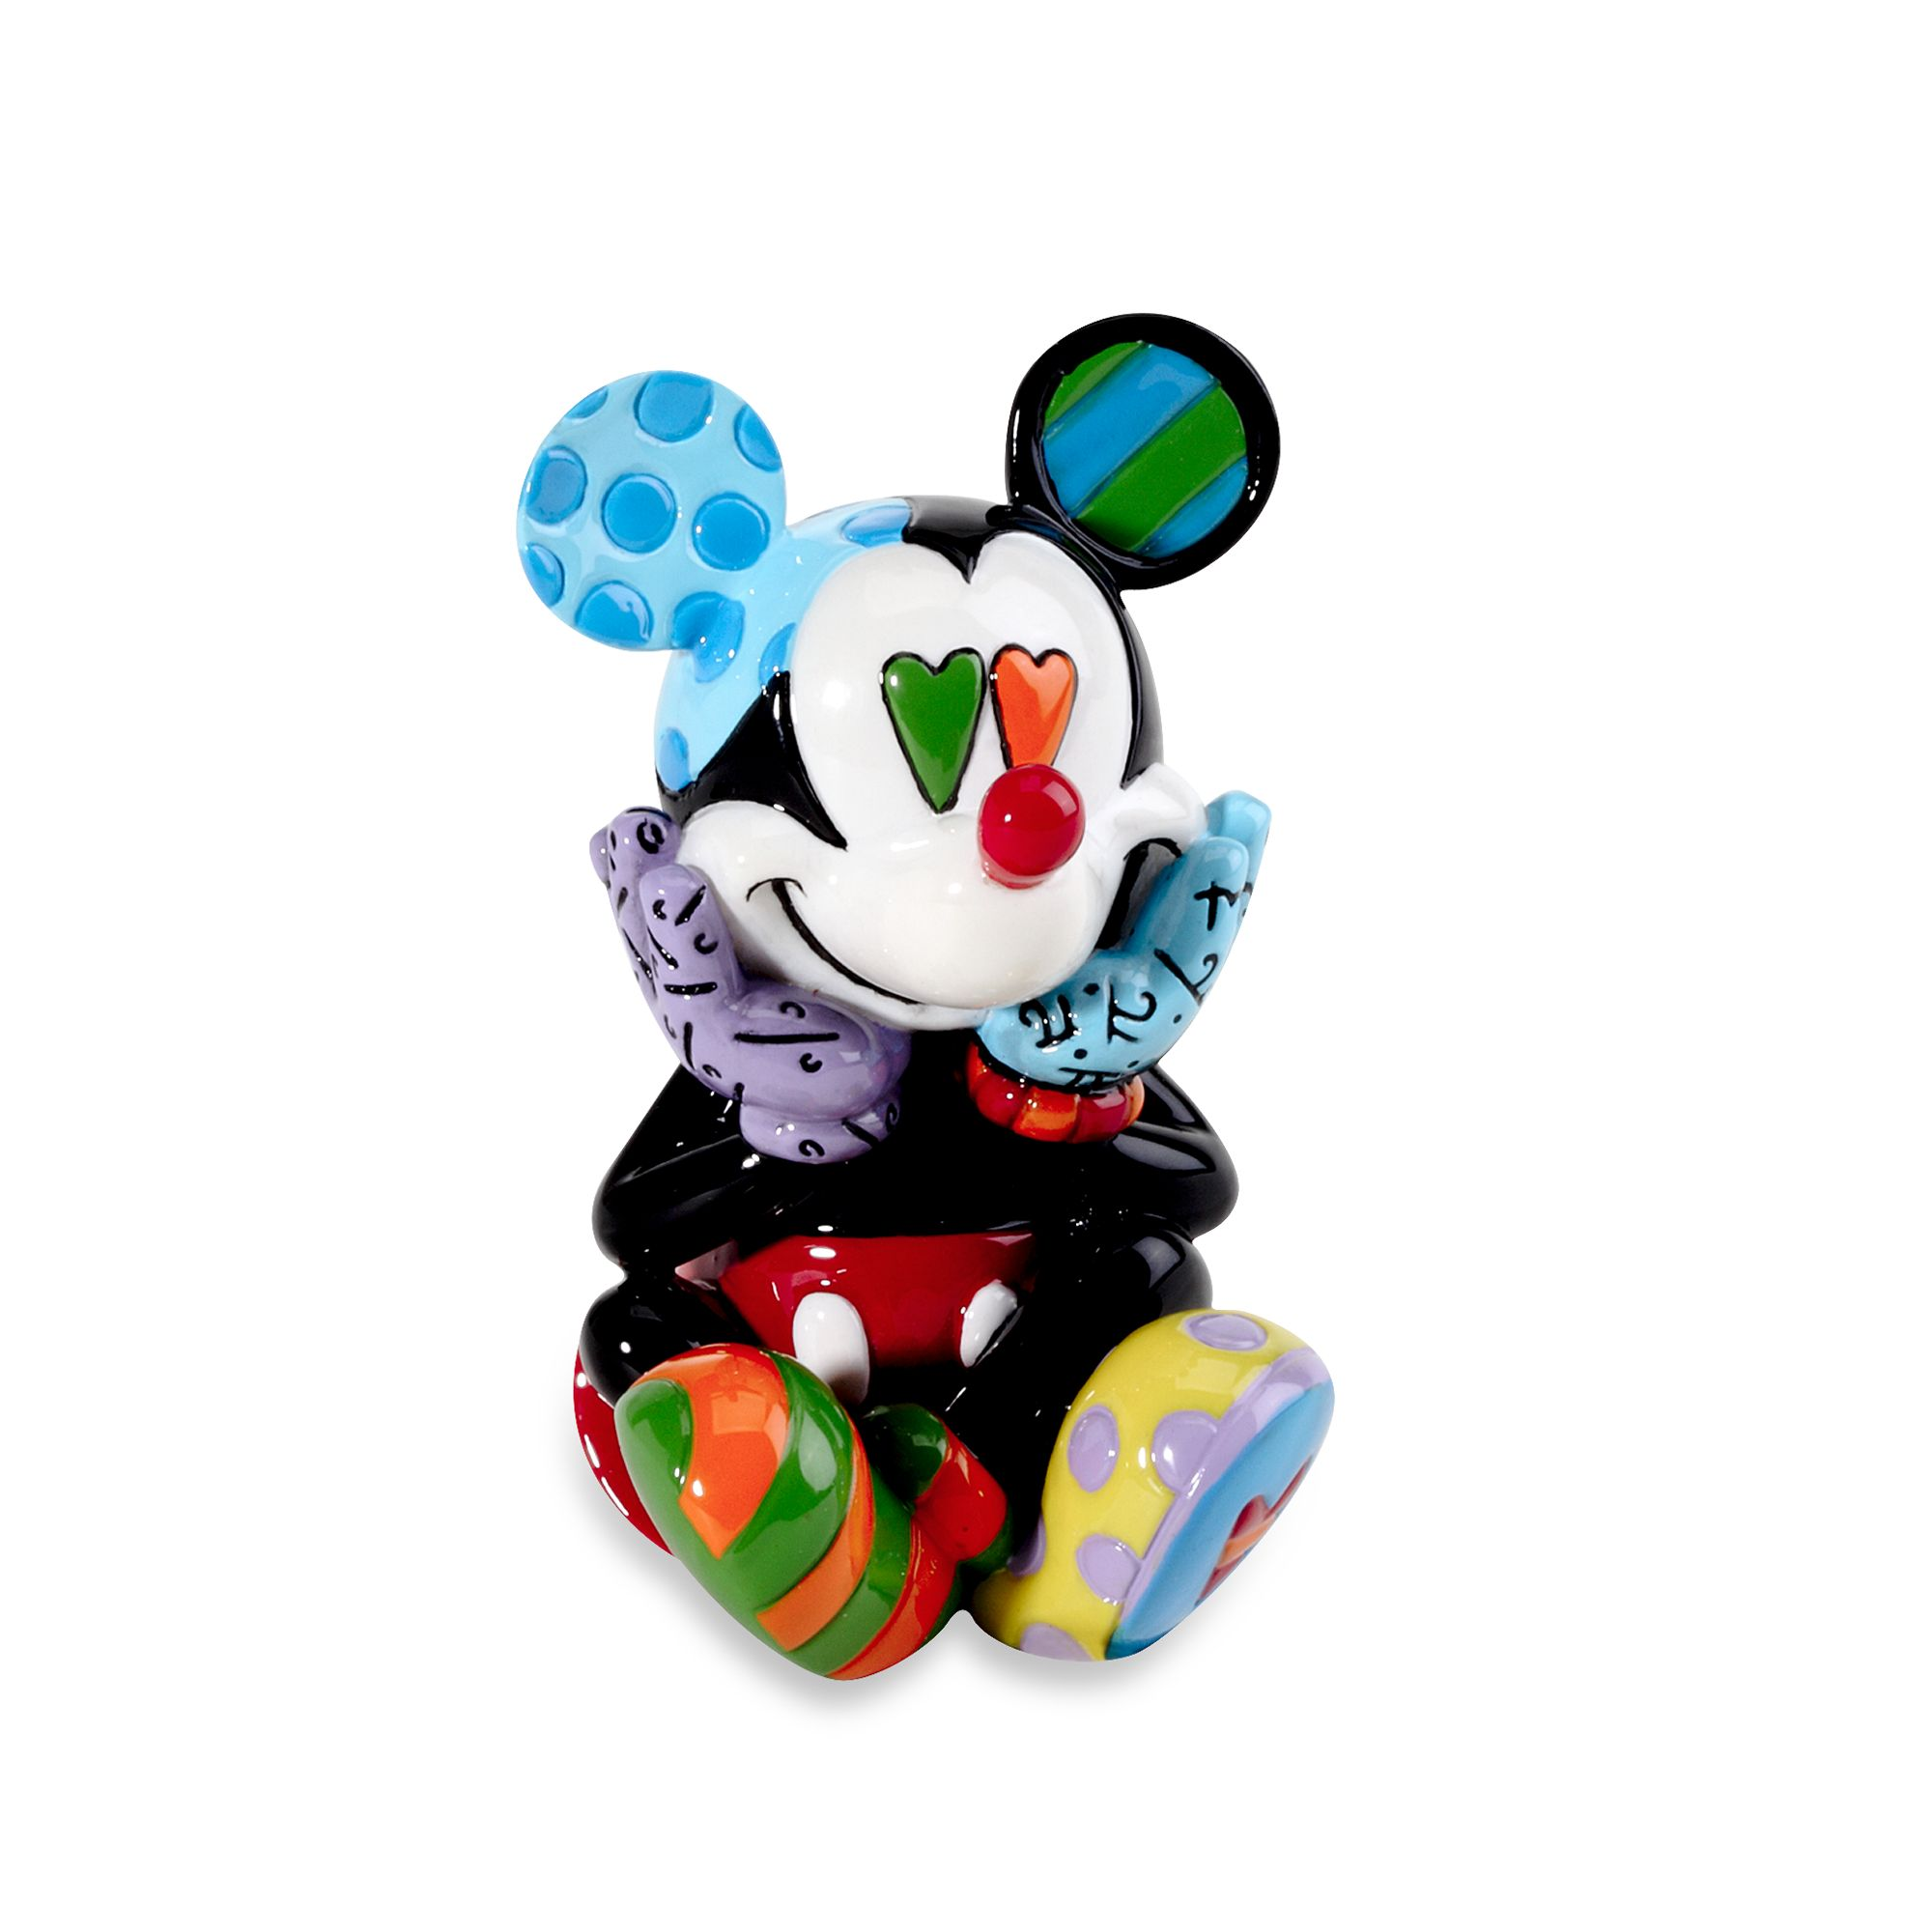 Britto Disney Characters Disney by Britto™ Mickey Mouse